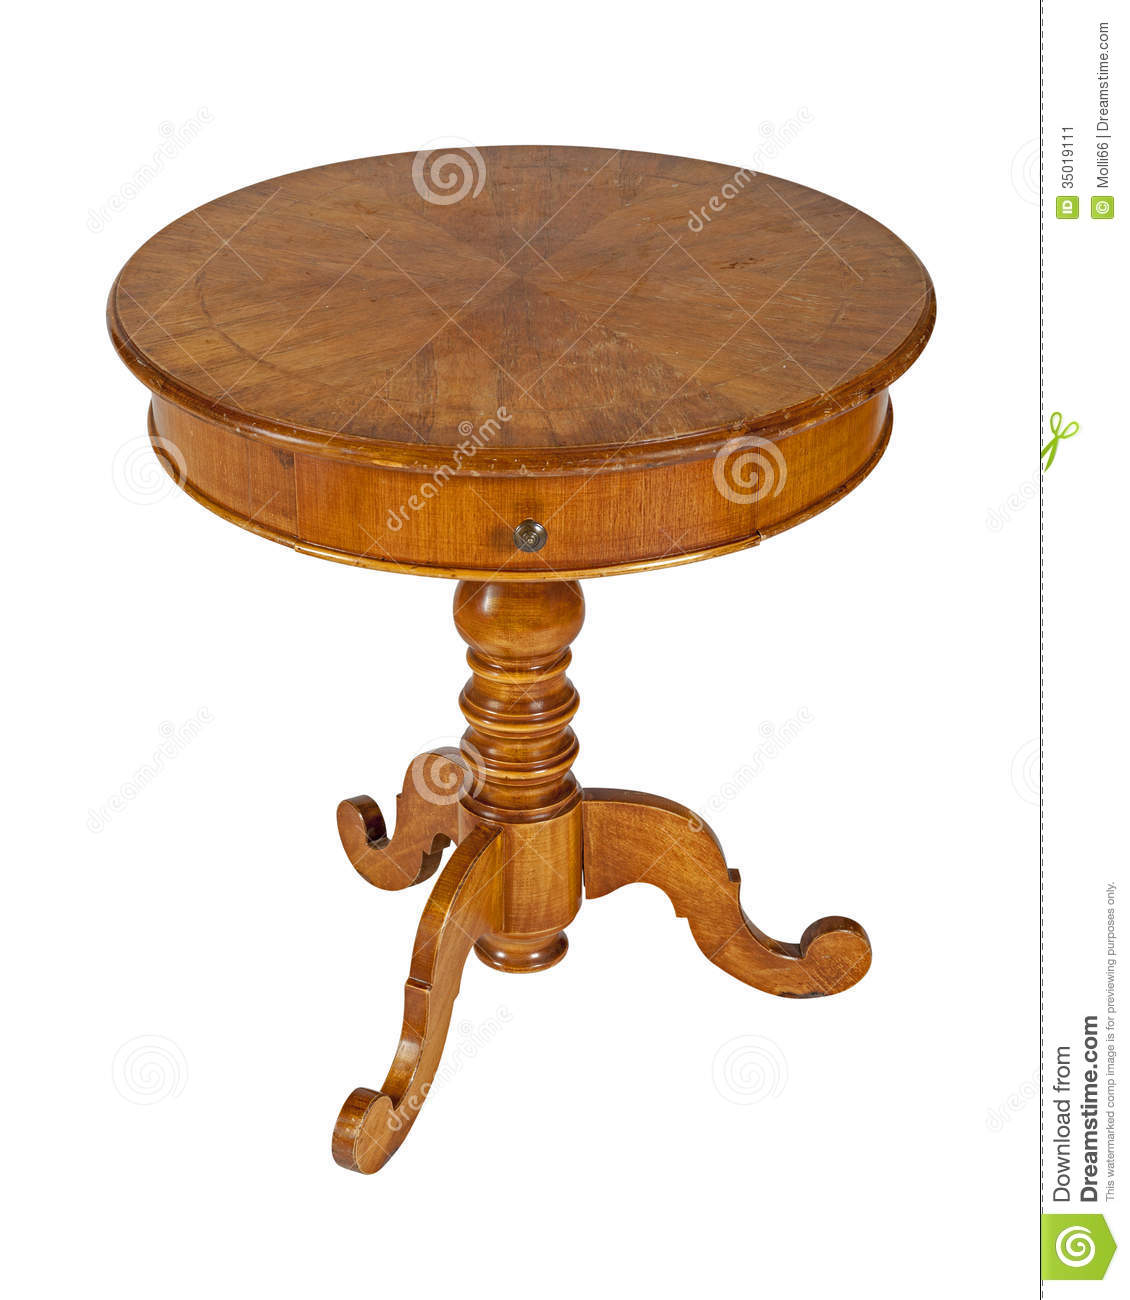 Vieille table ronde en bois sur le blanc image stock for Table ronde blanc